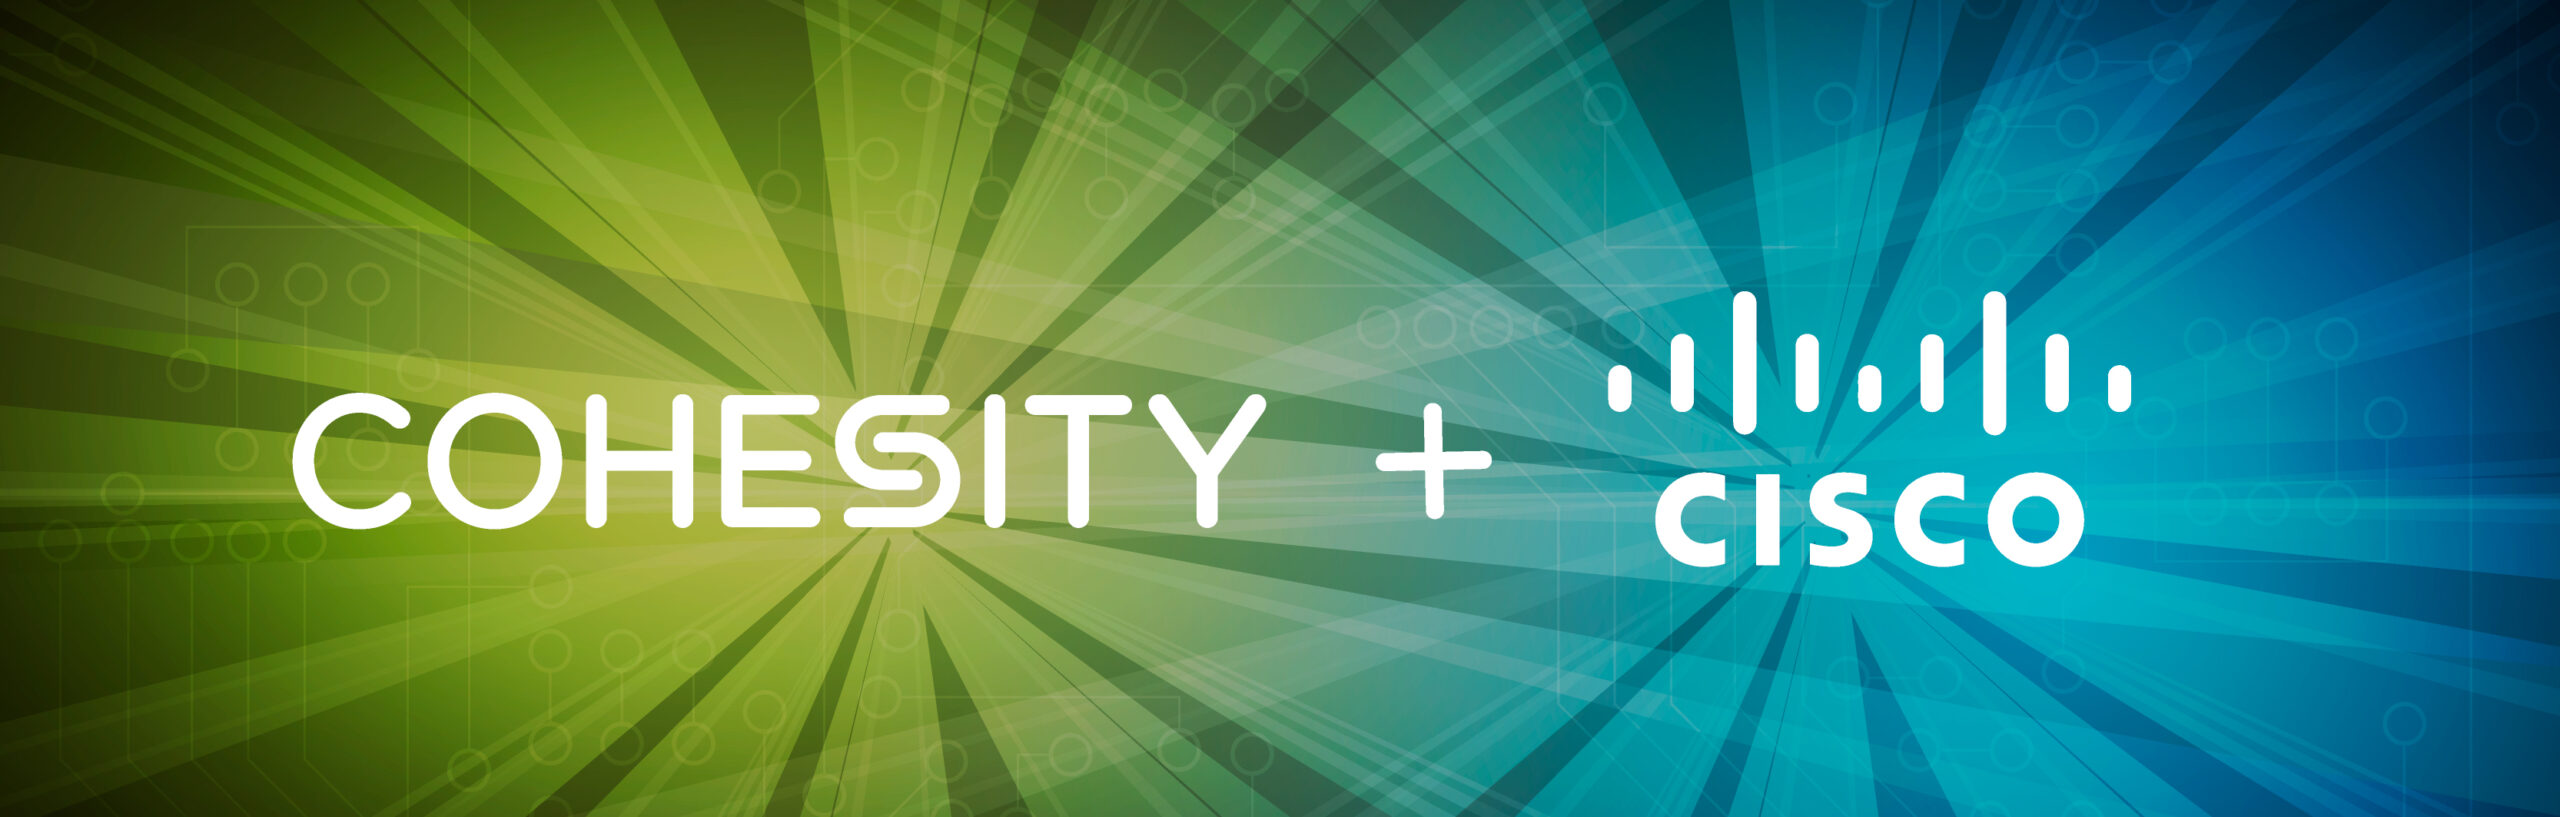 cisco-and-cohesity-join-1175x375